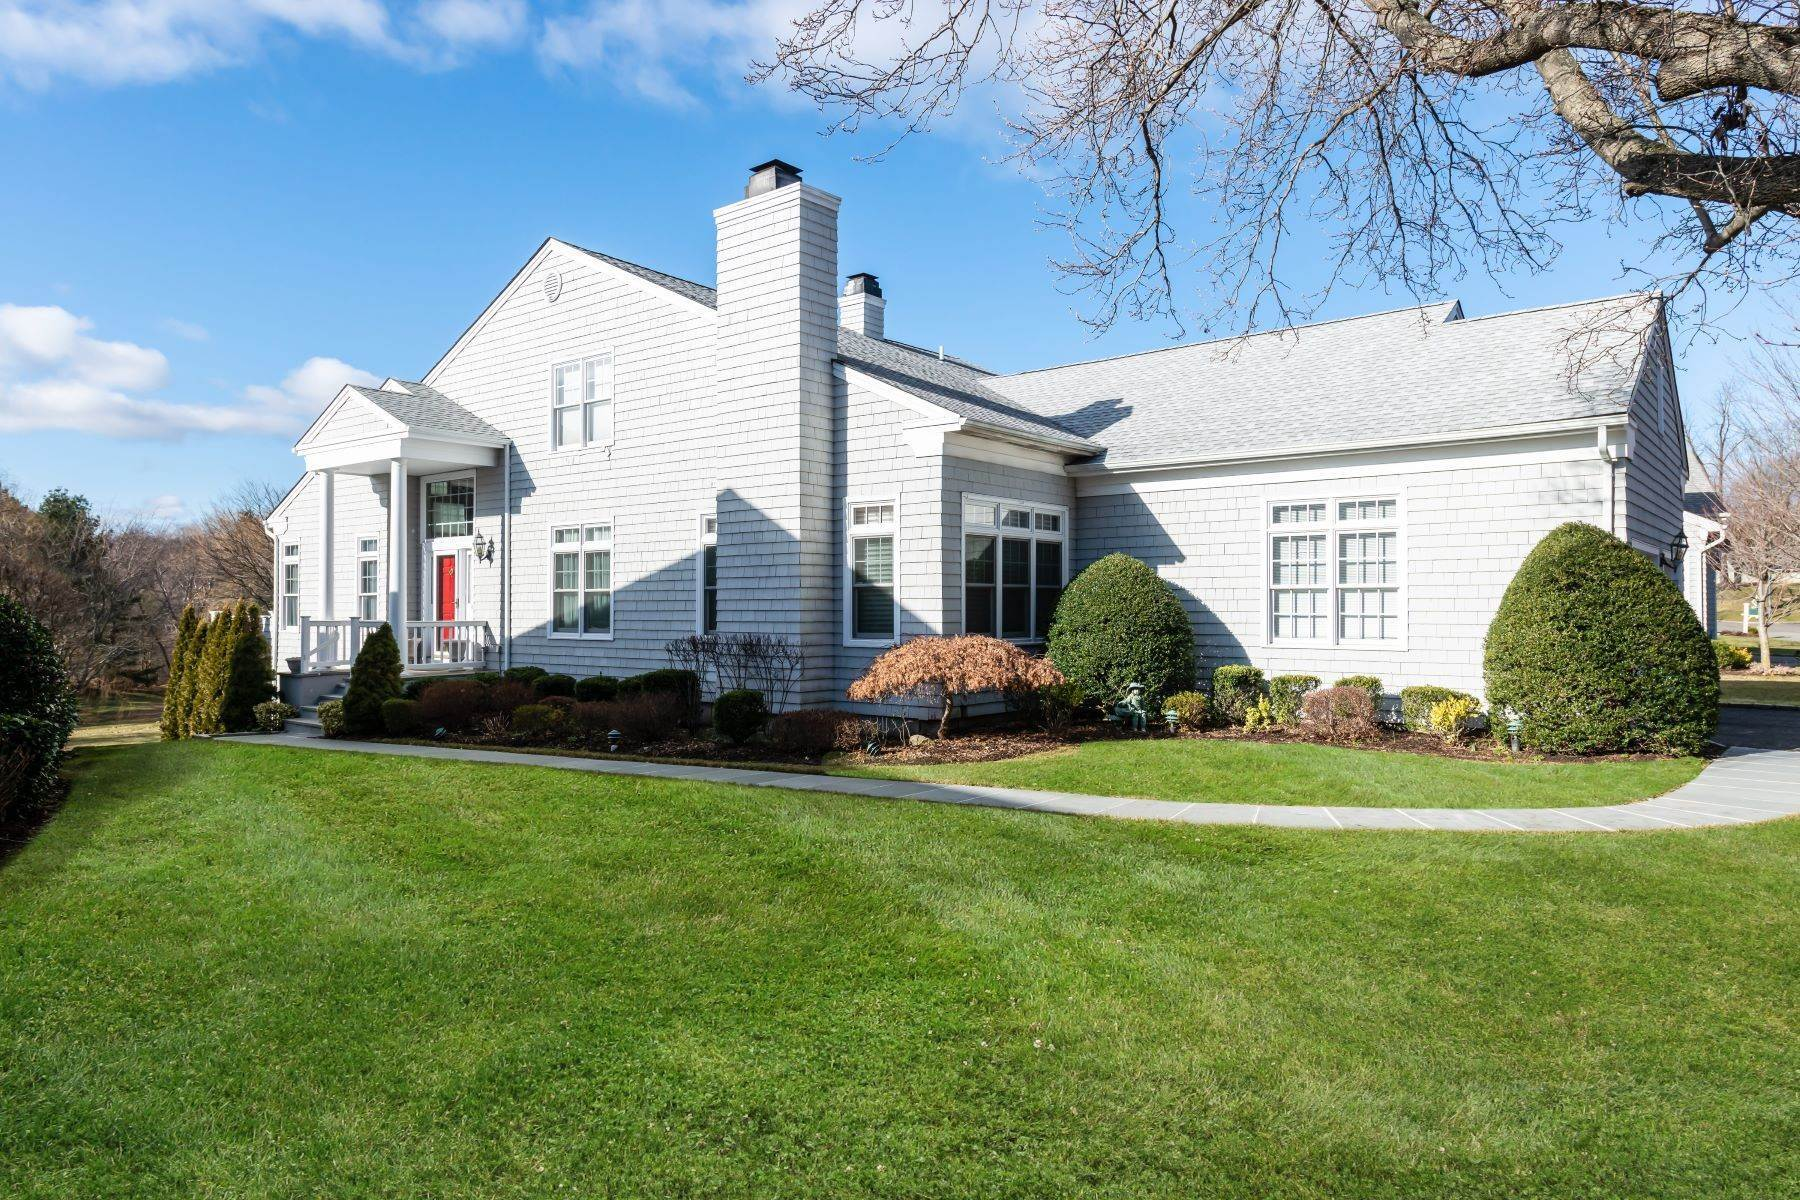 Single Family Homes for Sale at Oyster Bay 13 Fieldstone Lane Oyster Bay, New York 11771 United States